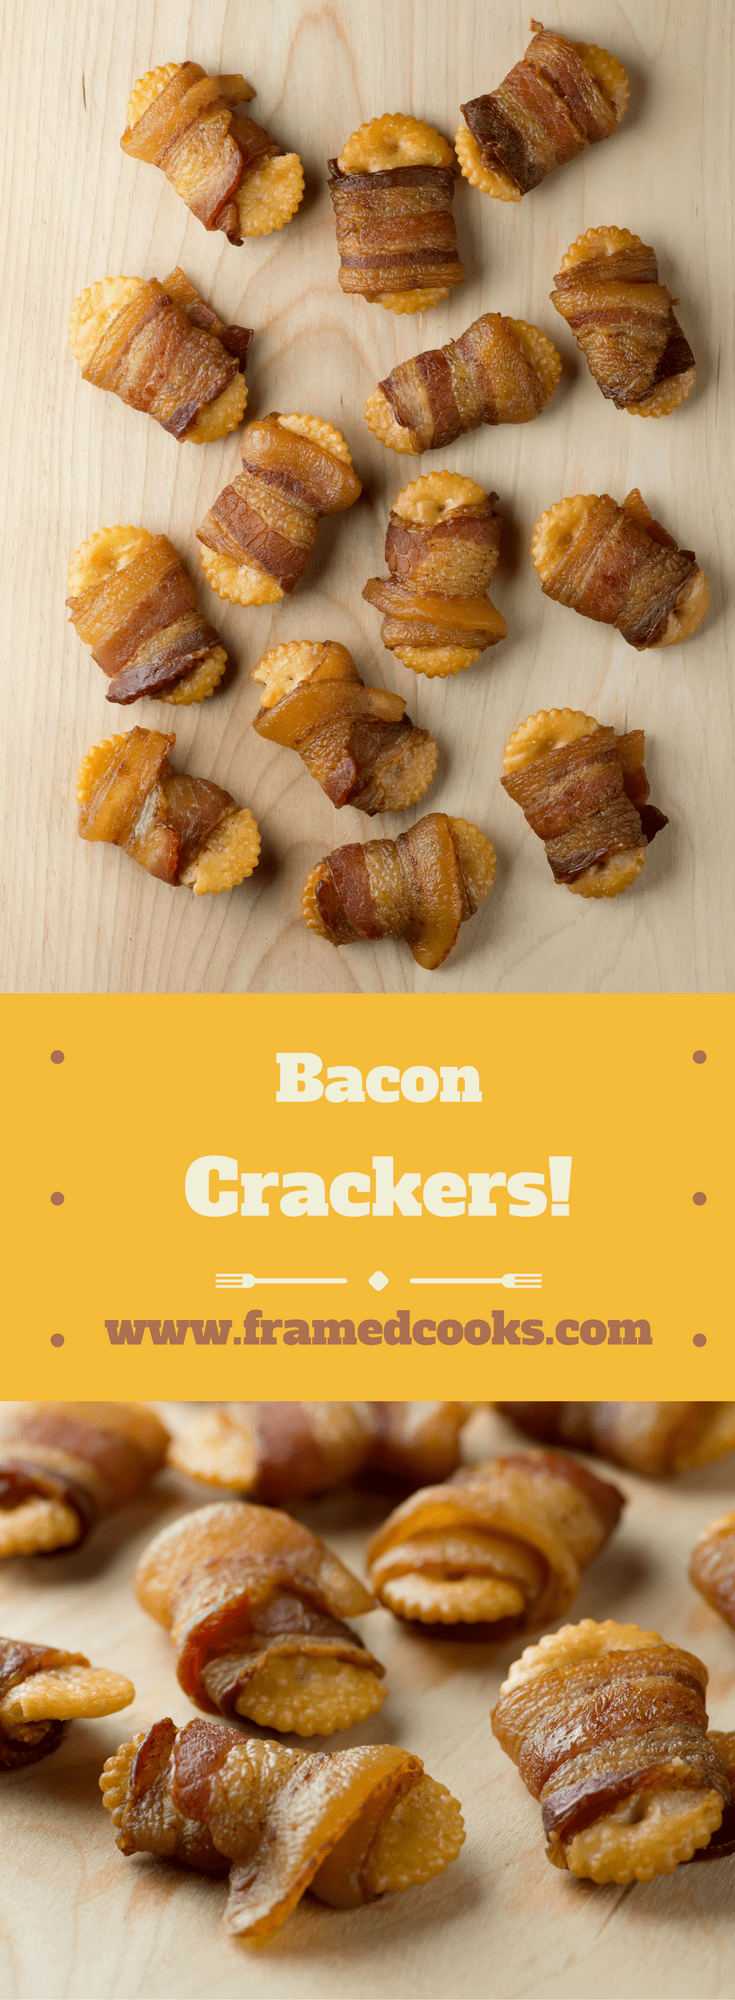 Who knew that crackers wrapped in bacon could be so deceptively, deliciously addictive? Bake up some bacon crackers with this super easy recipe!